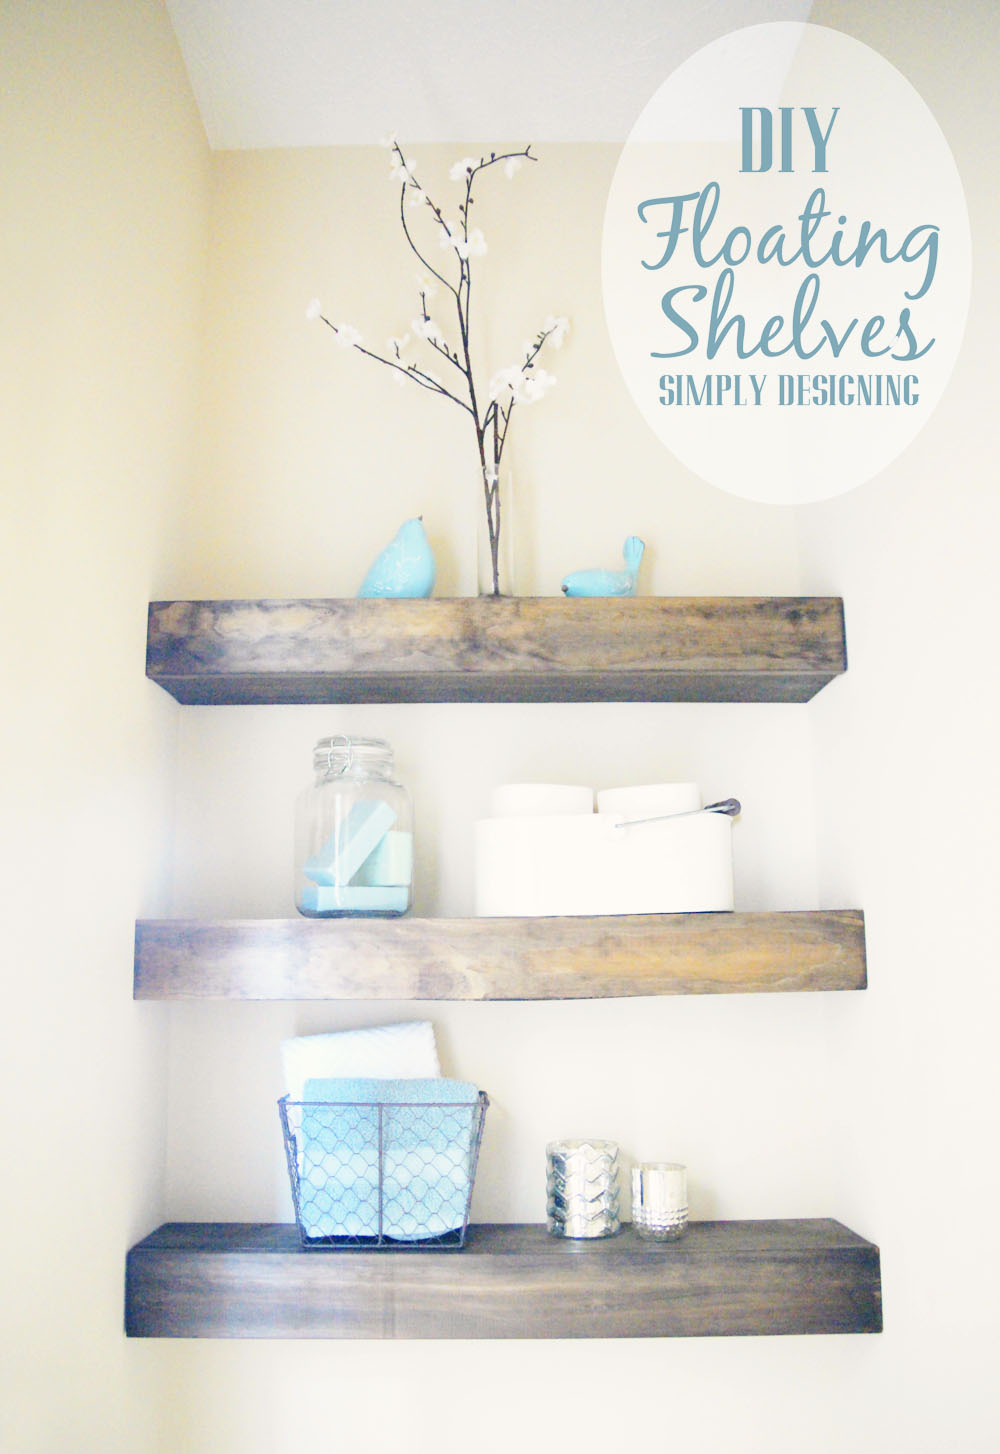 Elegant DIY Floating Shelves